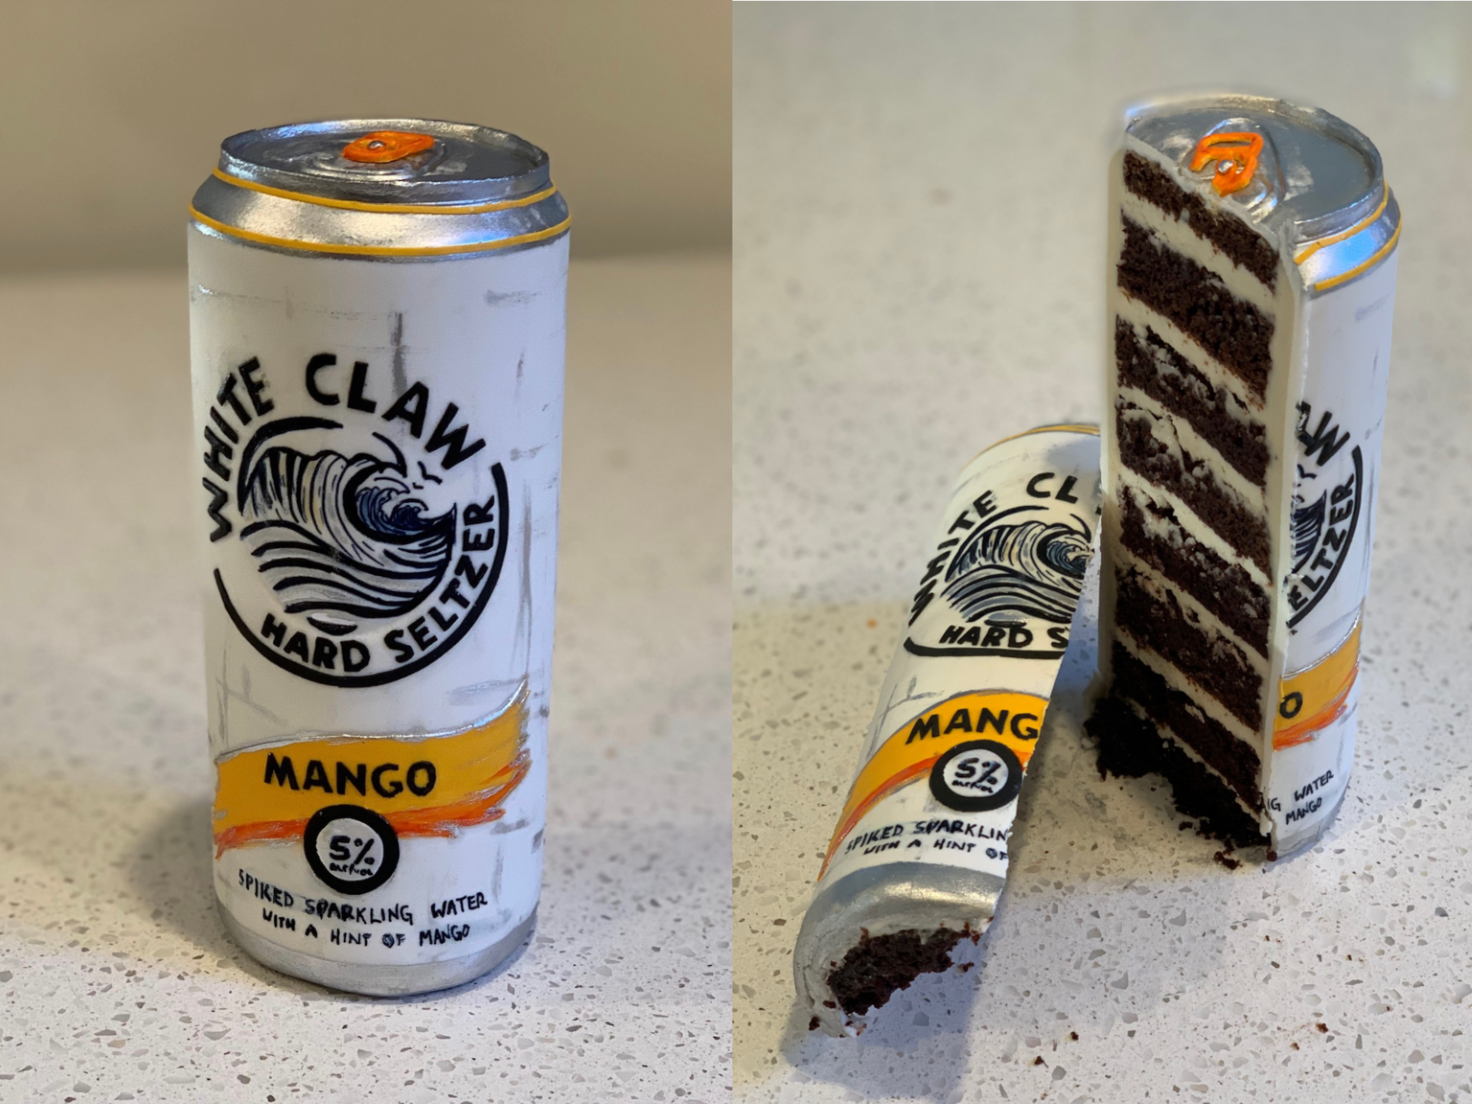 A New Jersey Baker Creates Incredible Optical Illusion Cakes From A White Claw Can To A Carton Of E Luke Vincentin Beer Cake Coors Light Beer Can Doritos